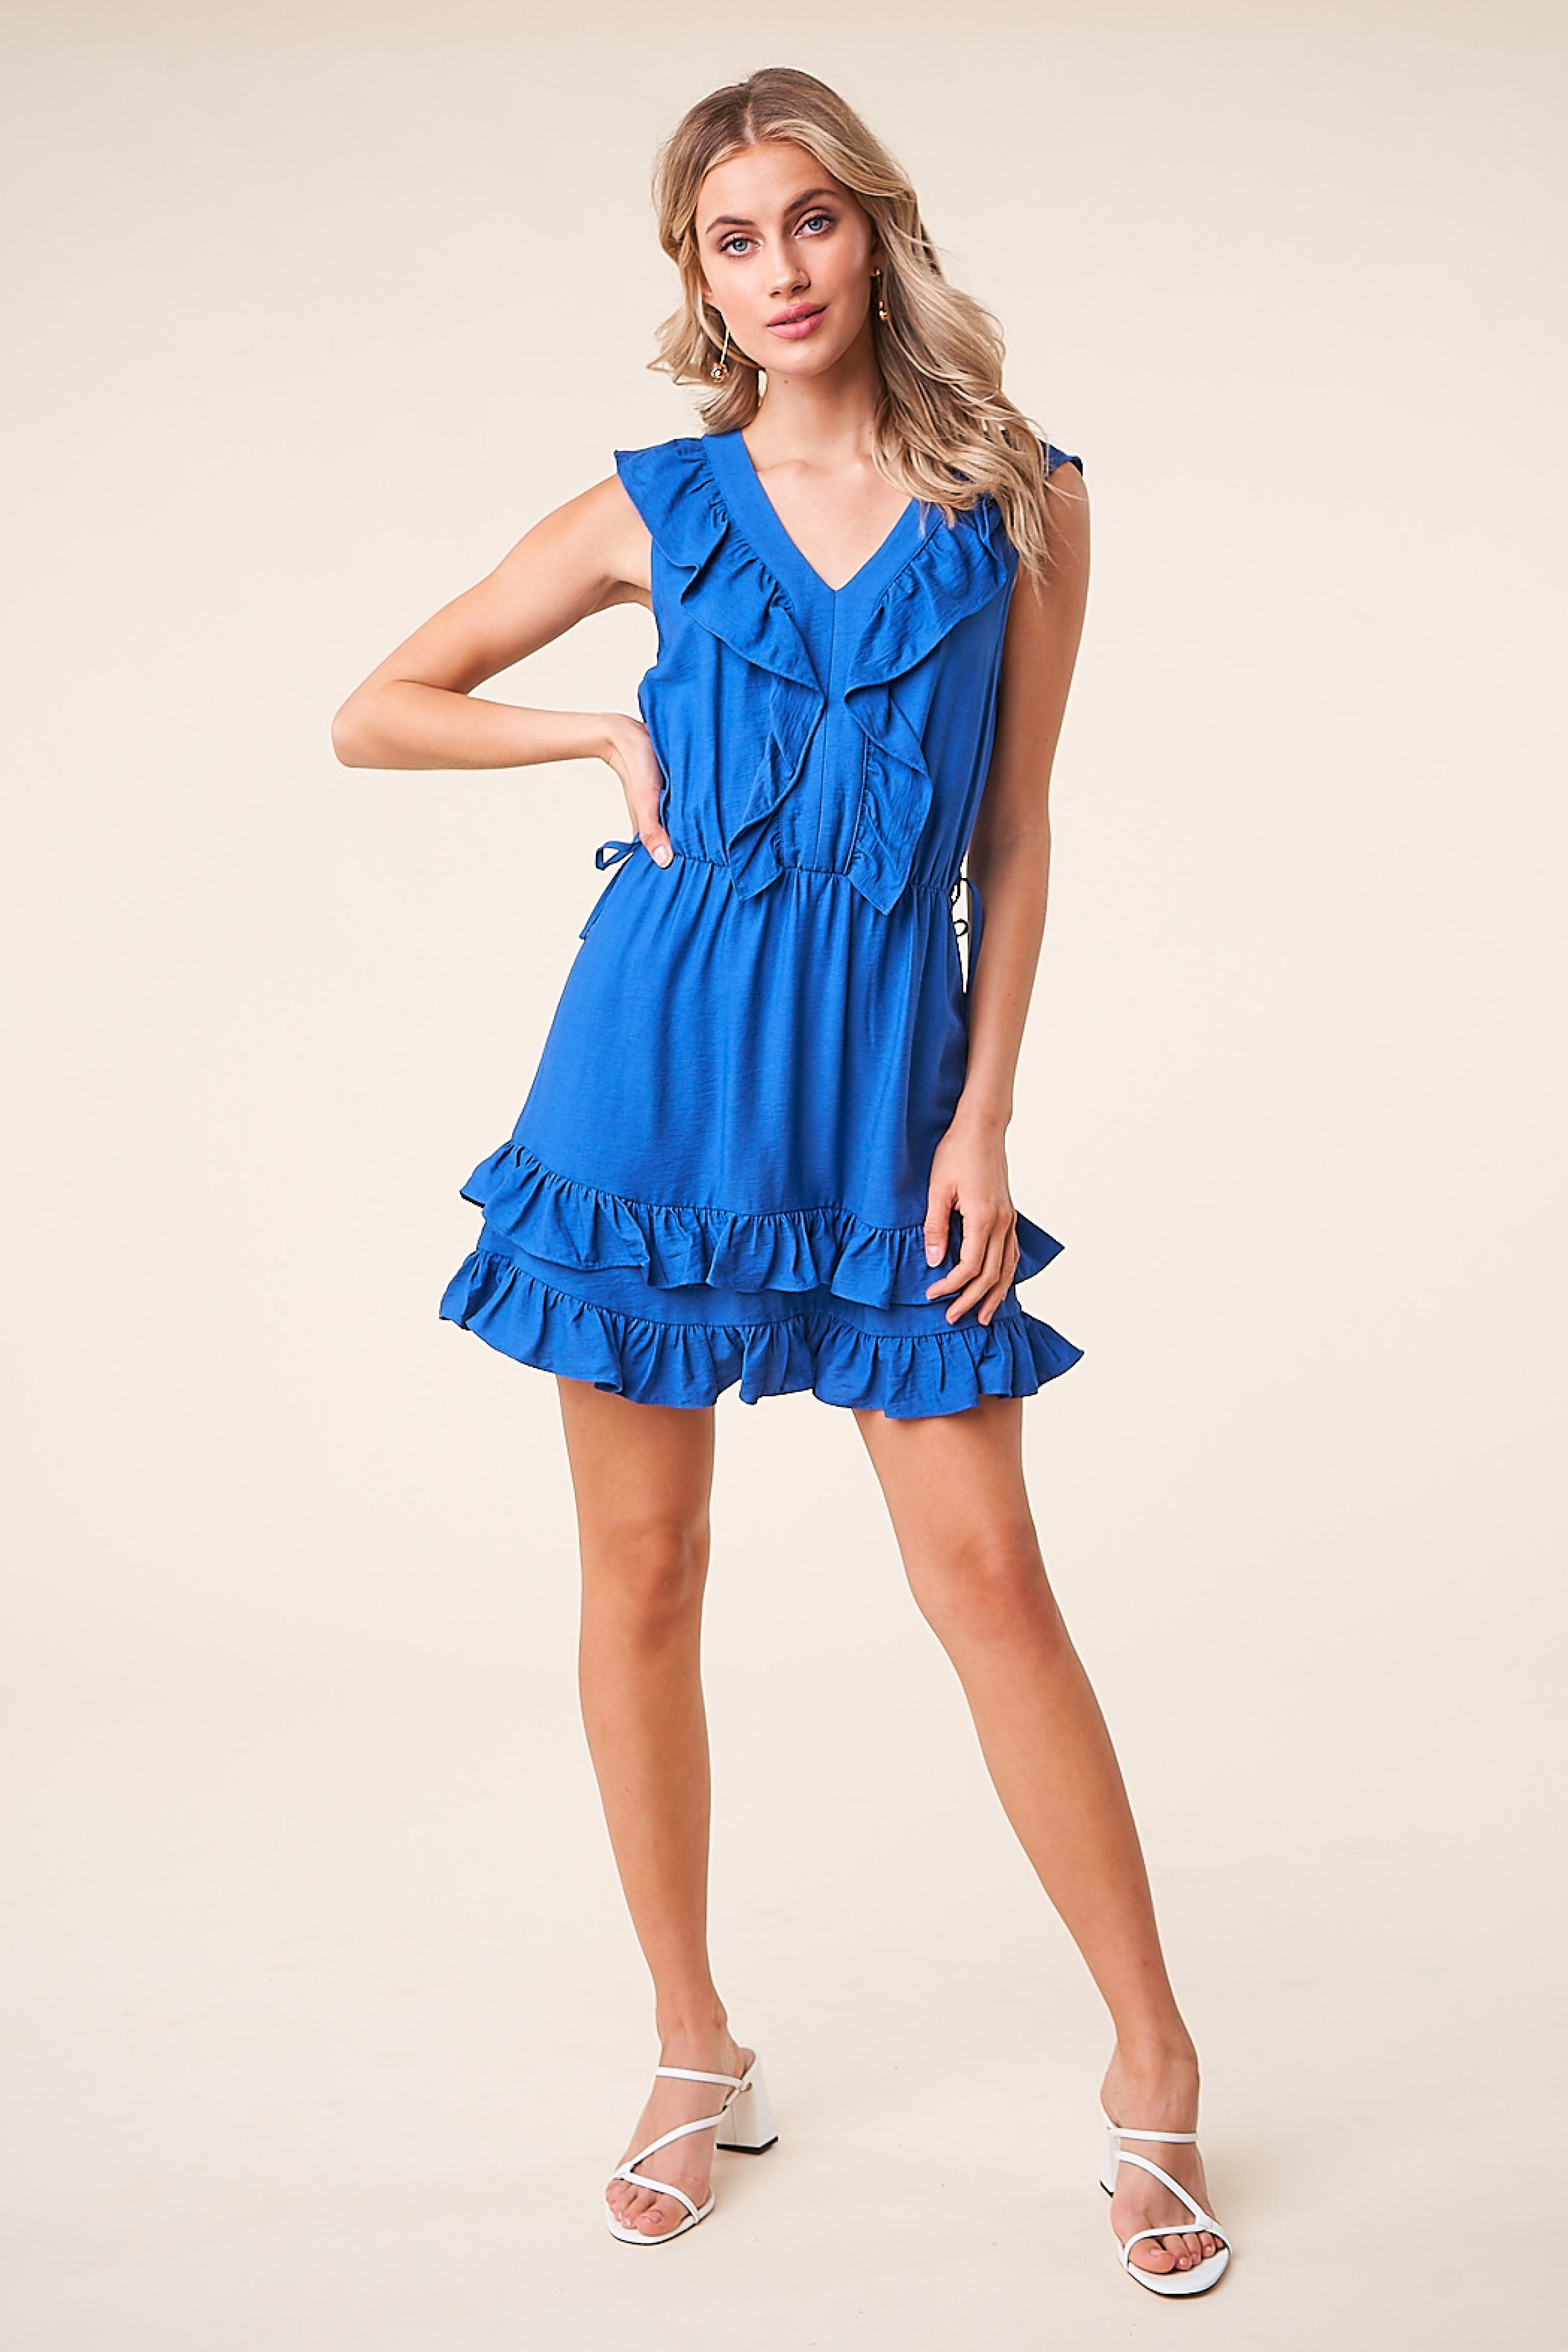 Sugar Lips - Nightshade Ruffle Mini Dress